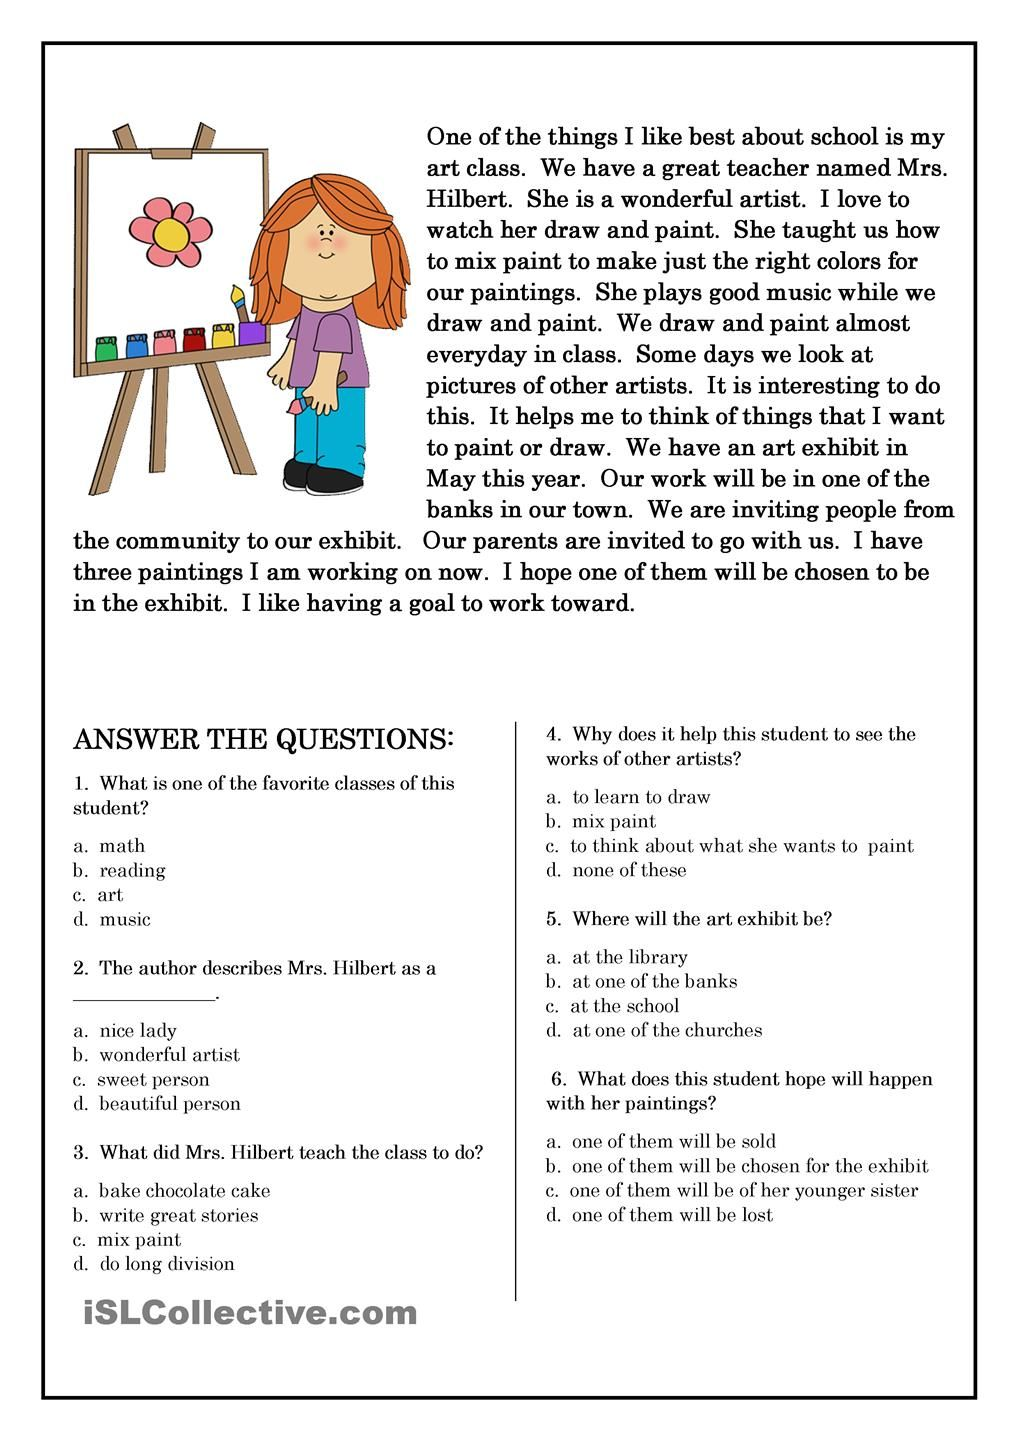 Worksheet Level 5 Reading Comprehension 1000 images about reading comprehension on pinterest